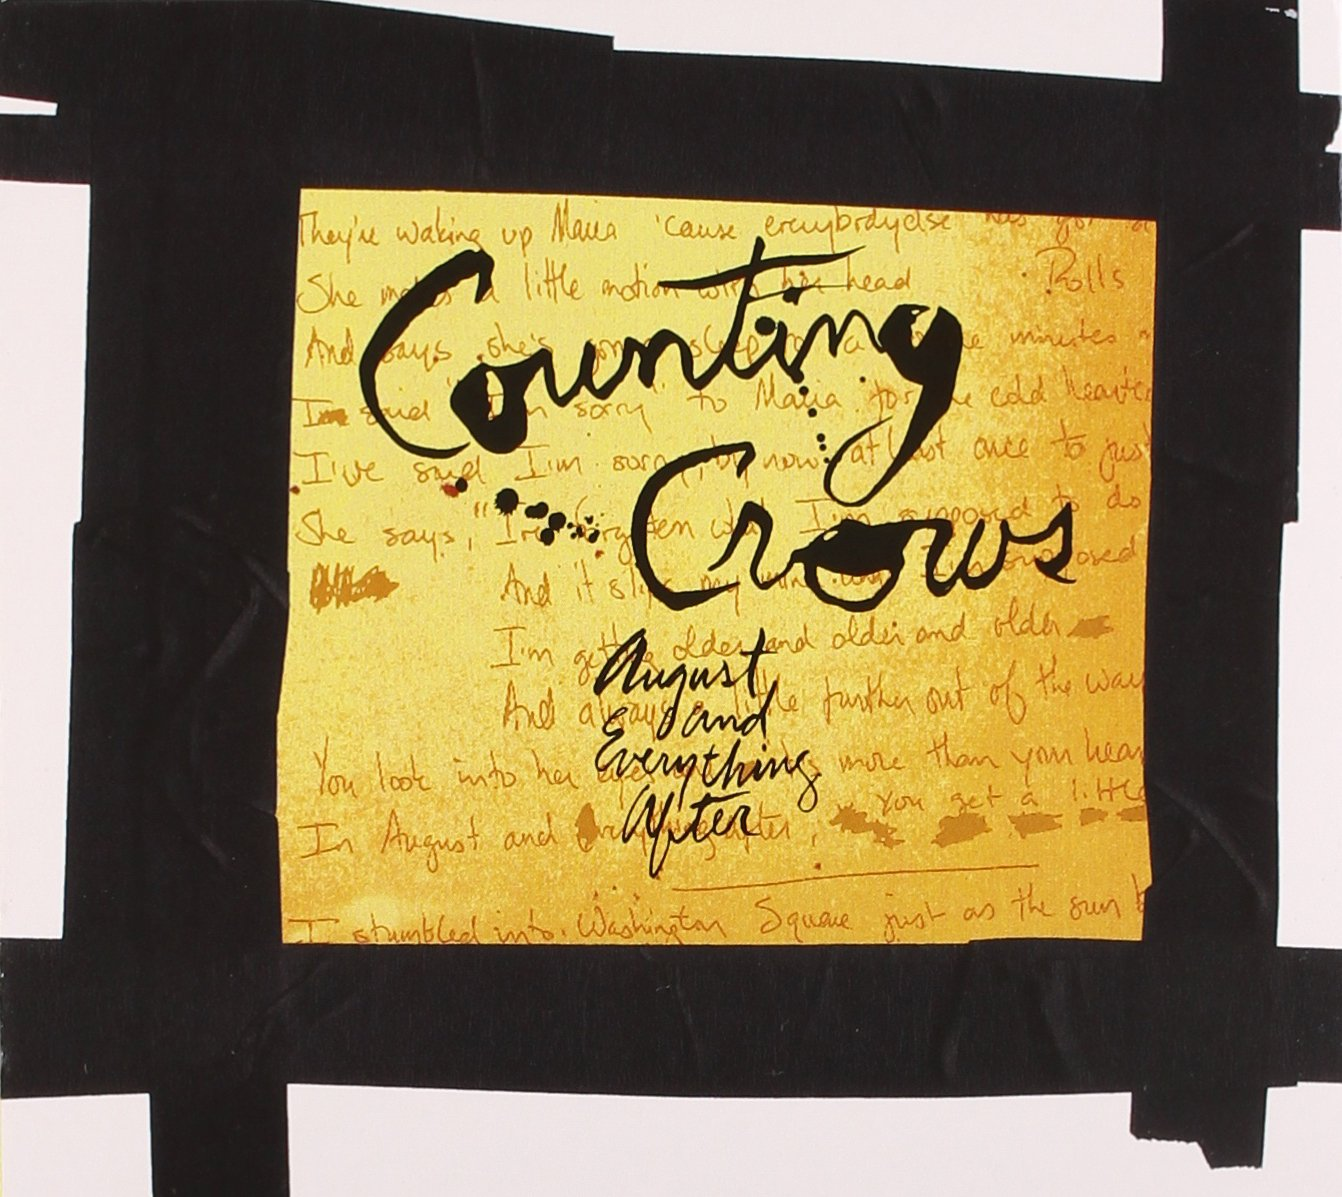 Counting Crows – Mr. Jones